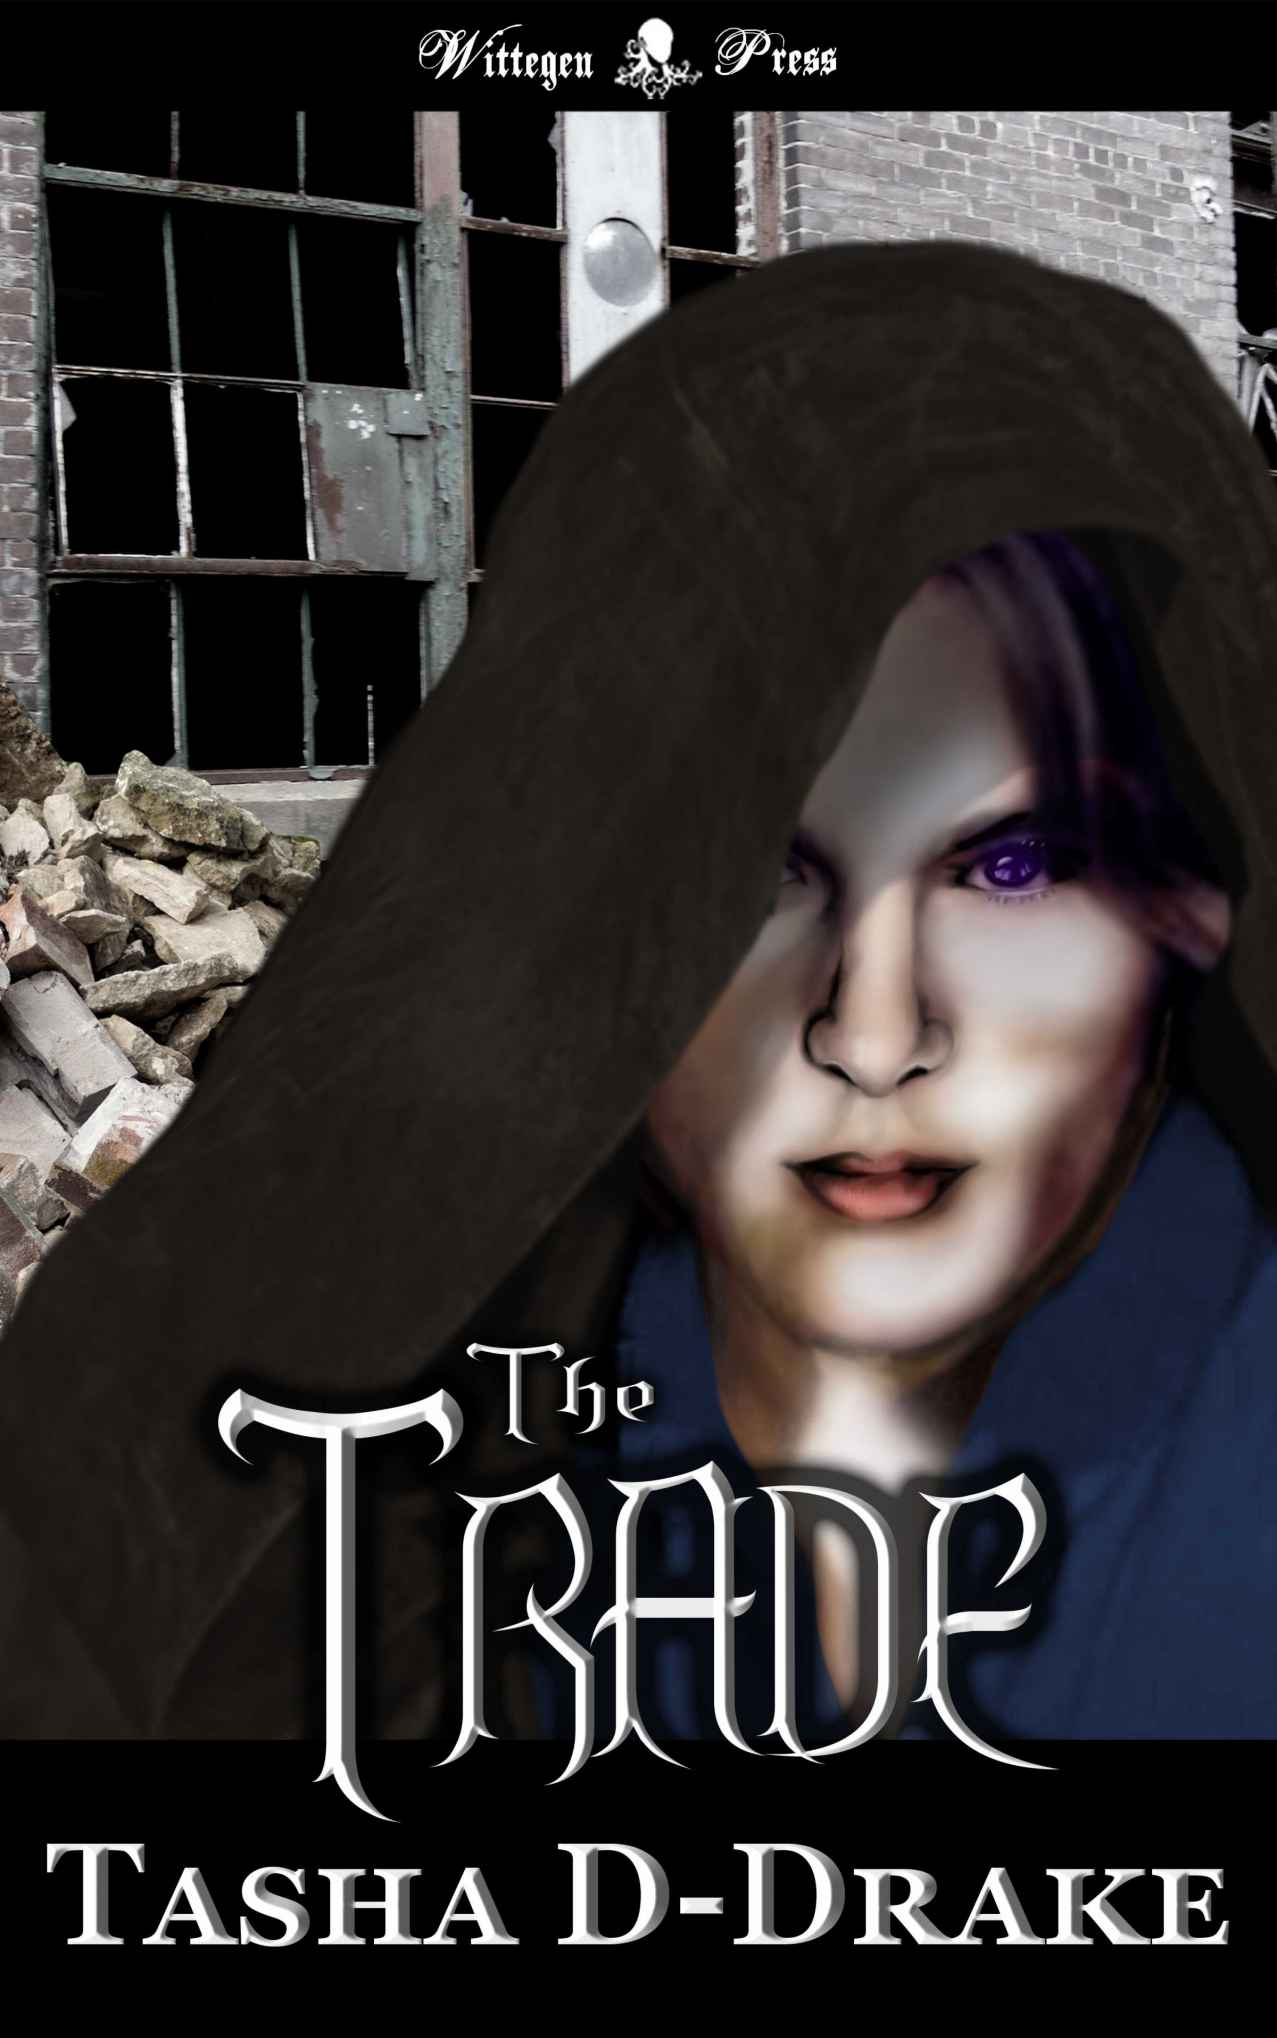 The Trade by Tasha D-Drake